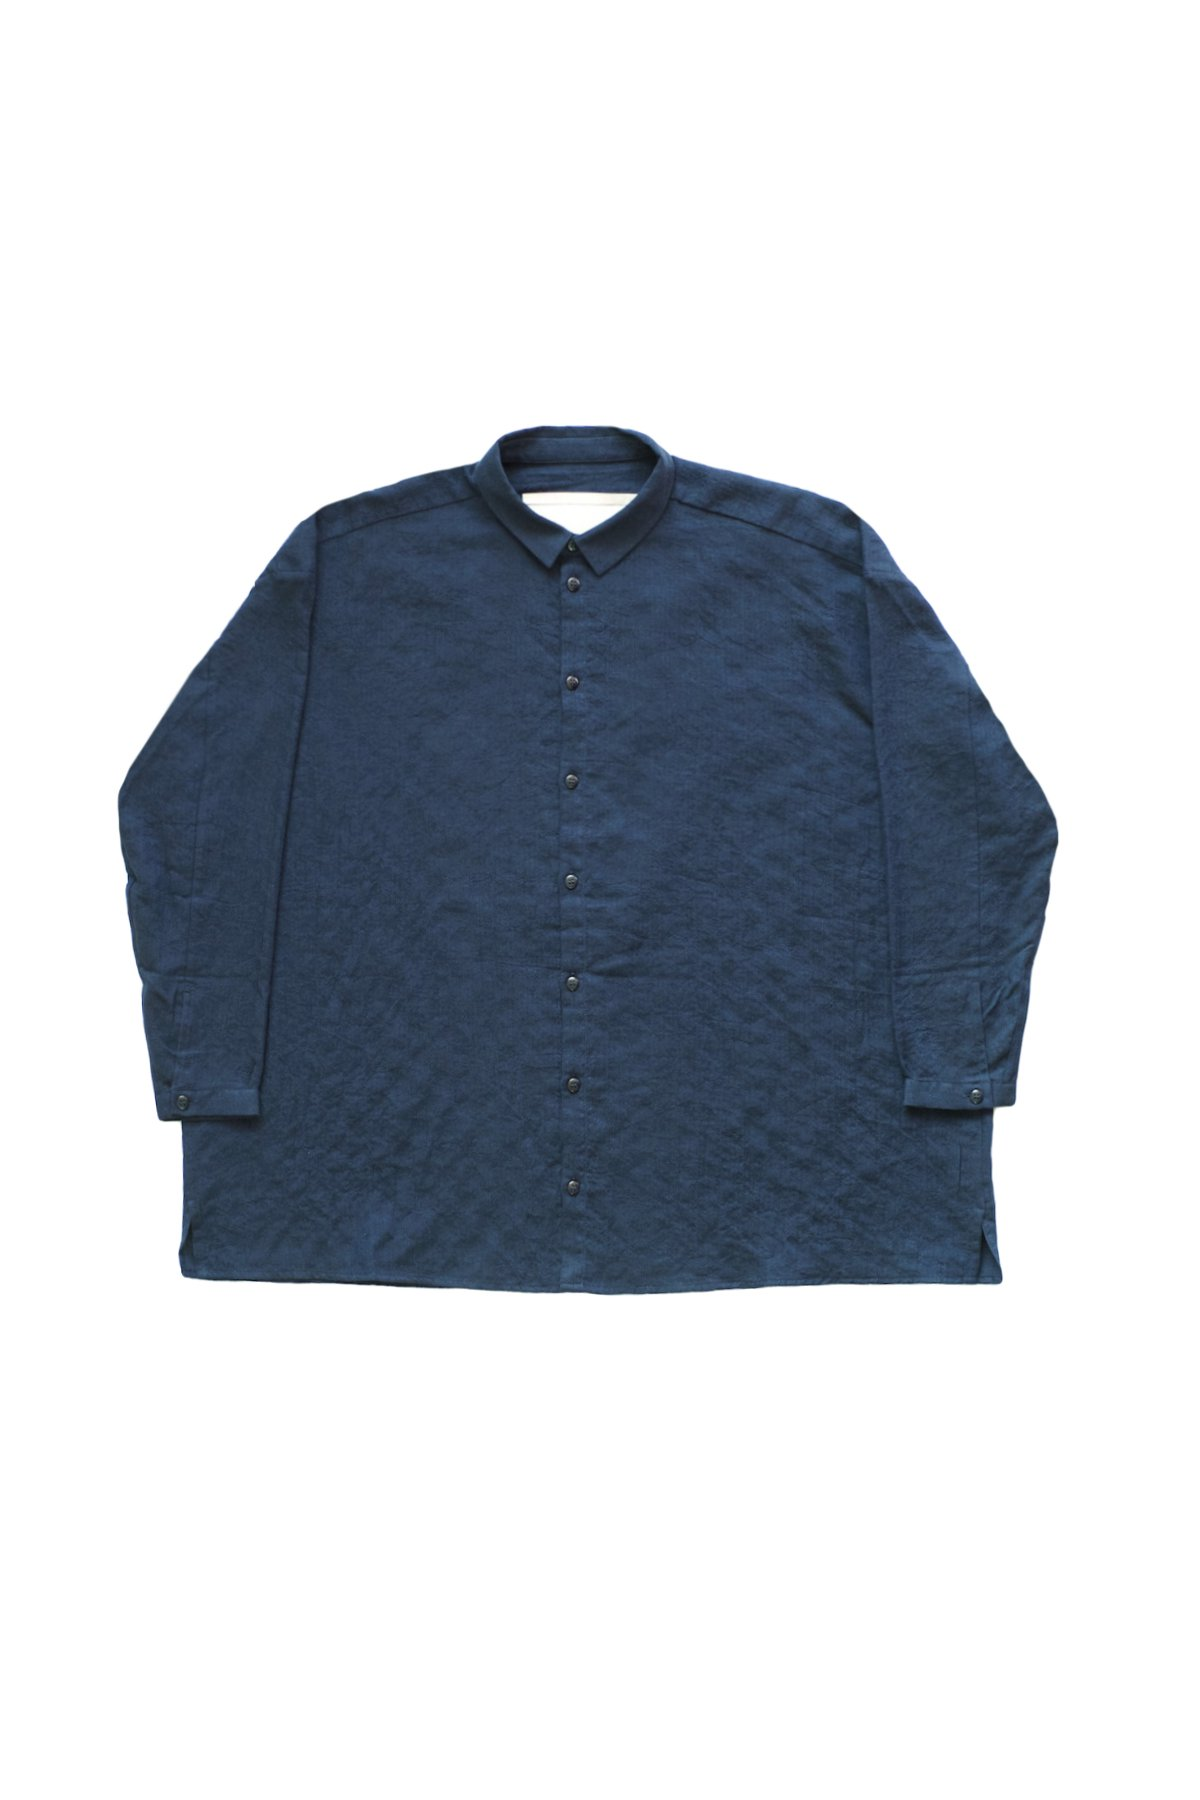 toogood - THE DRAUGHTSMAN SHIRT LONG - SOFT COTTON SHIRTING  INK - PRICE  71,500 tax-in